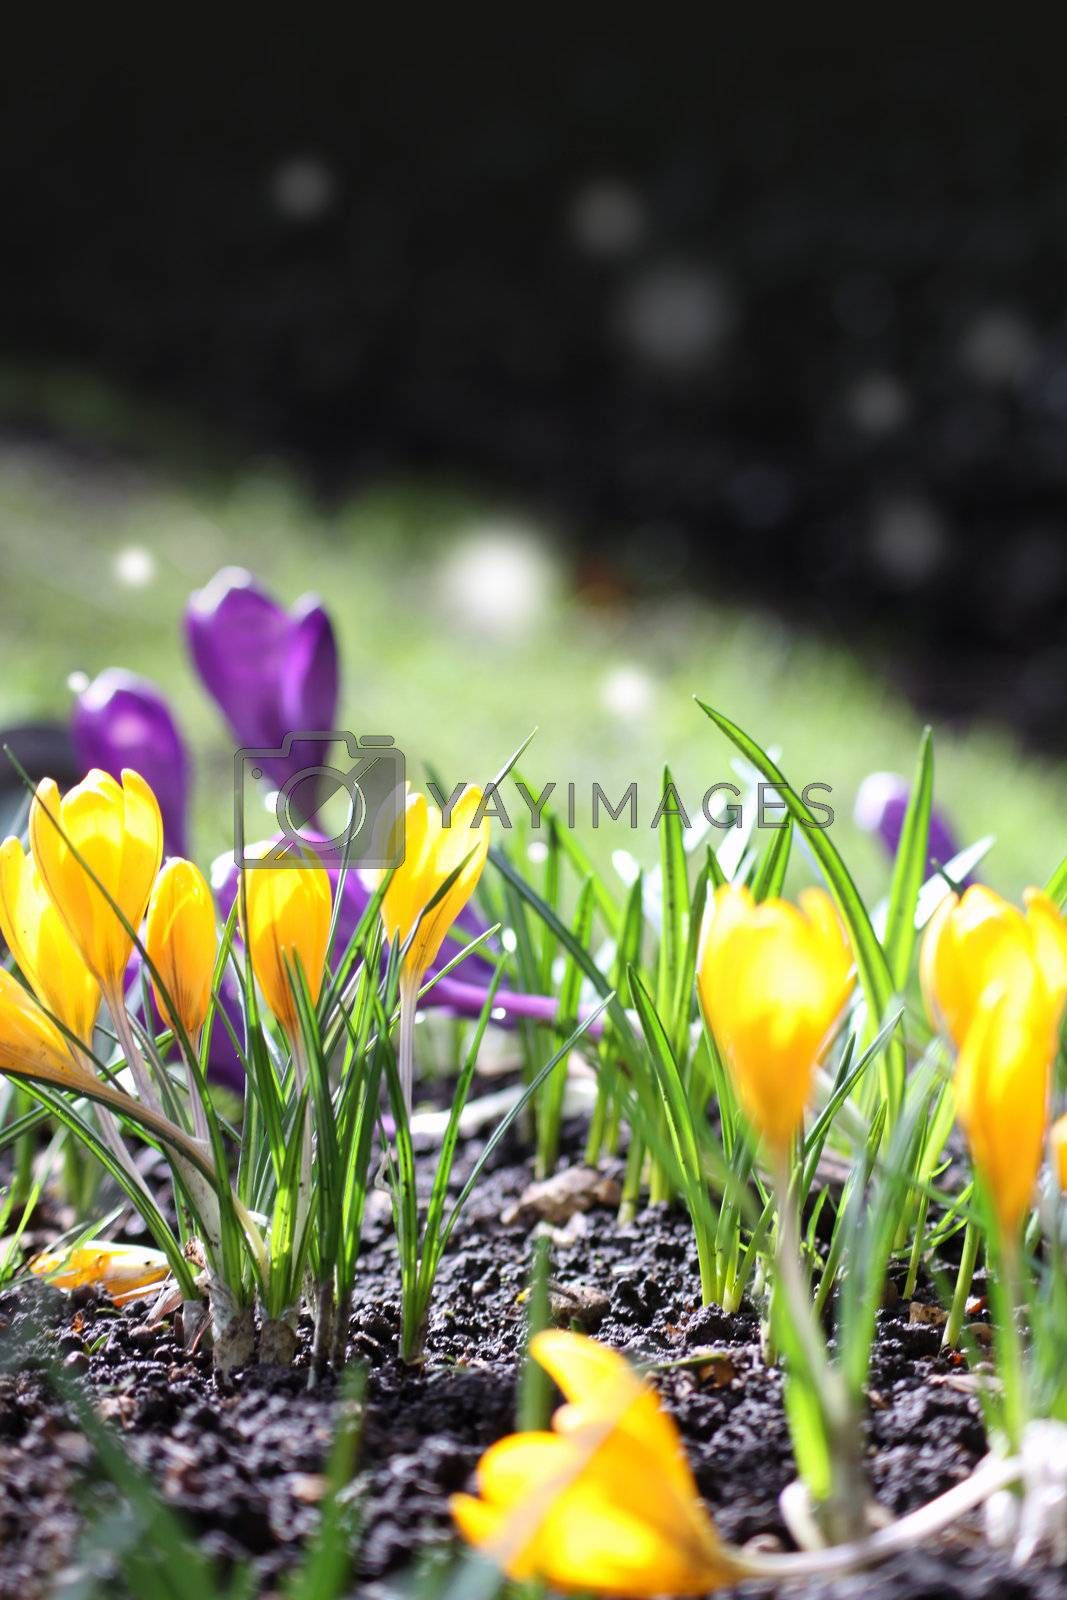 The first Spring blooms of yellow and violet crocus in the spring sunshine. Middle distance focus on a portrait format.